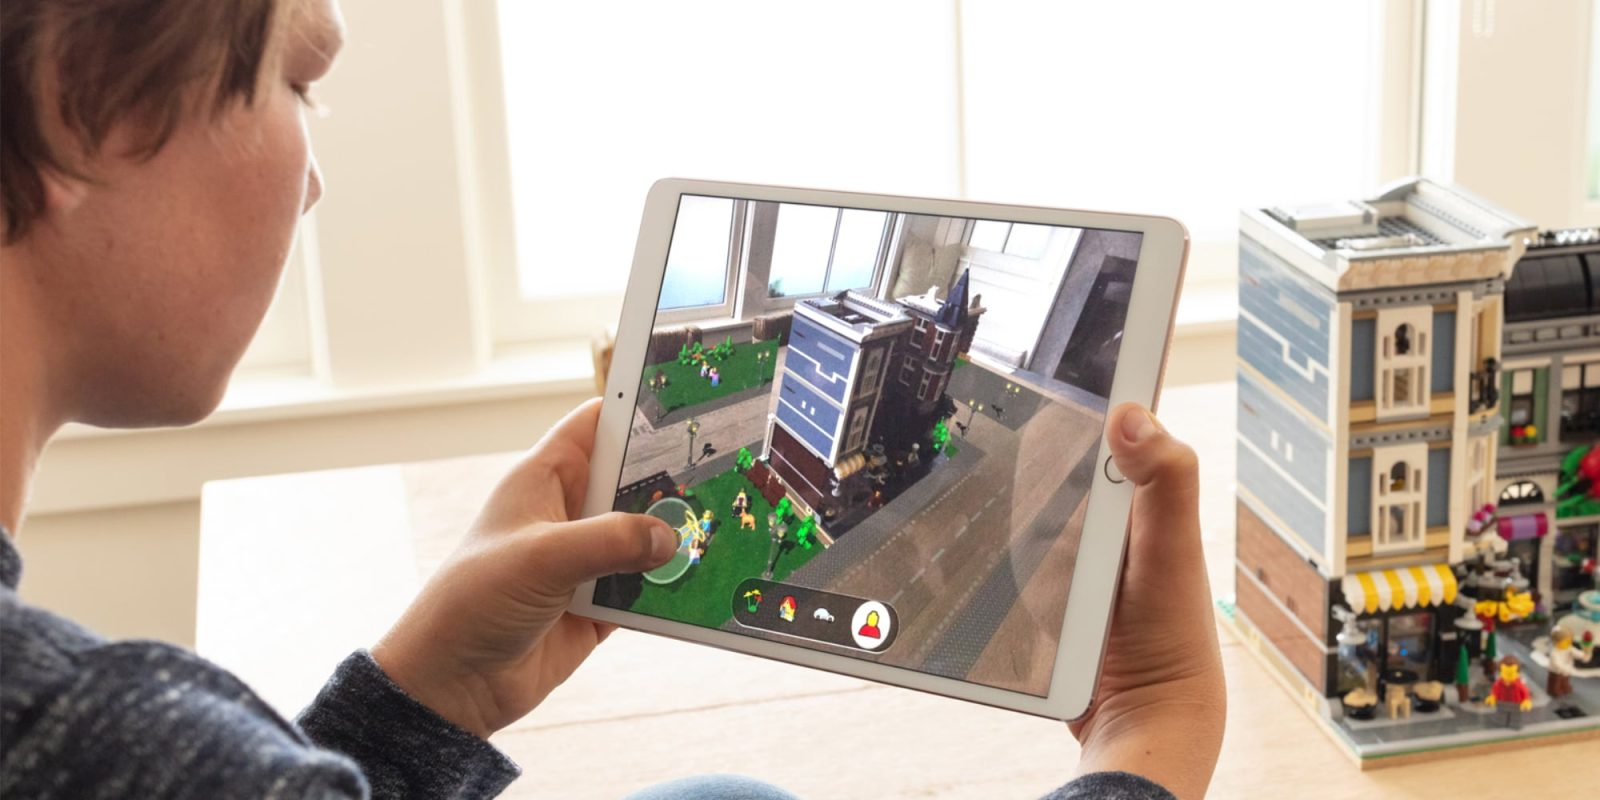 The Augmented Reality Apps for Your Home